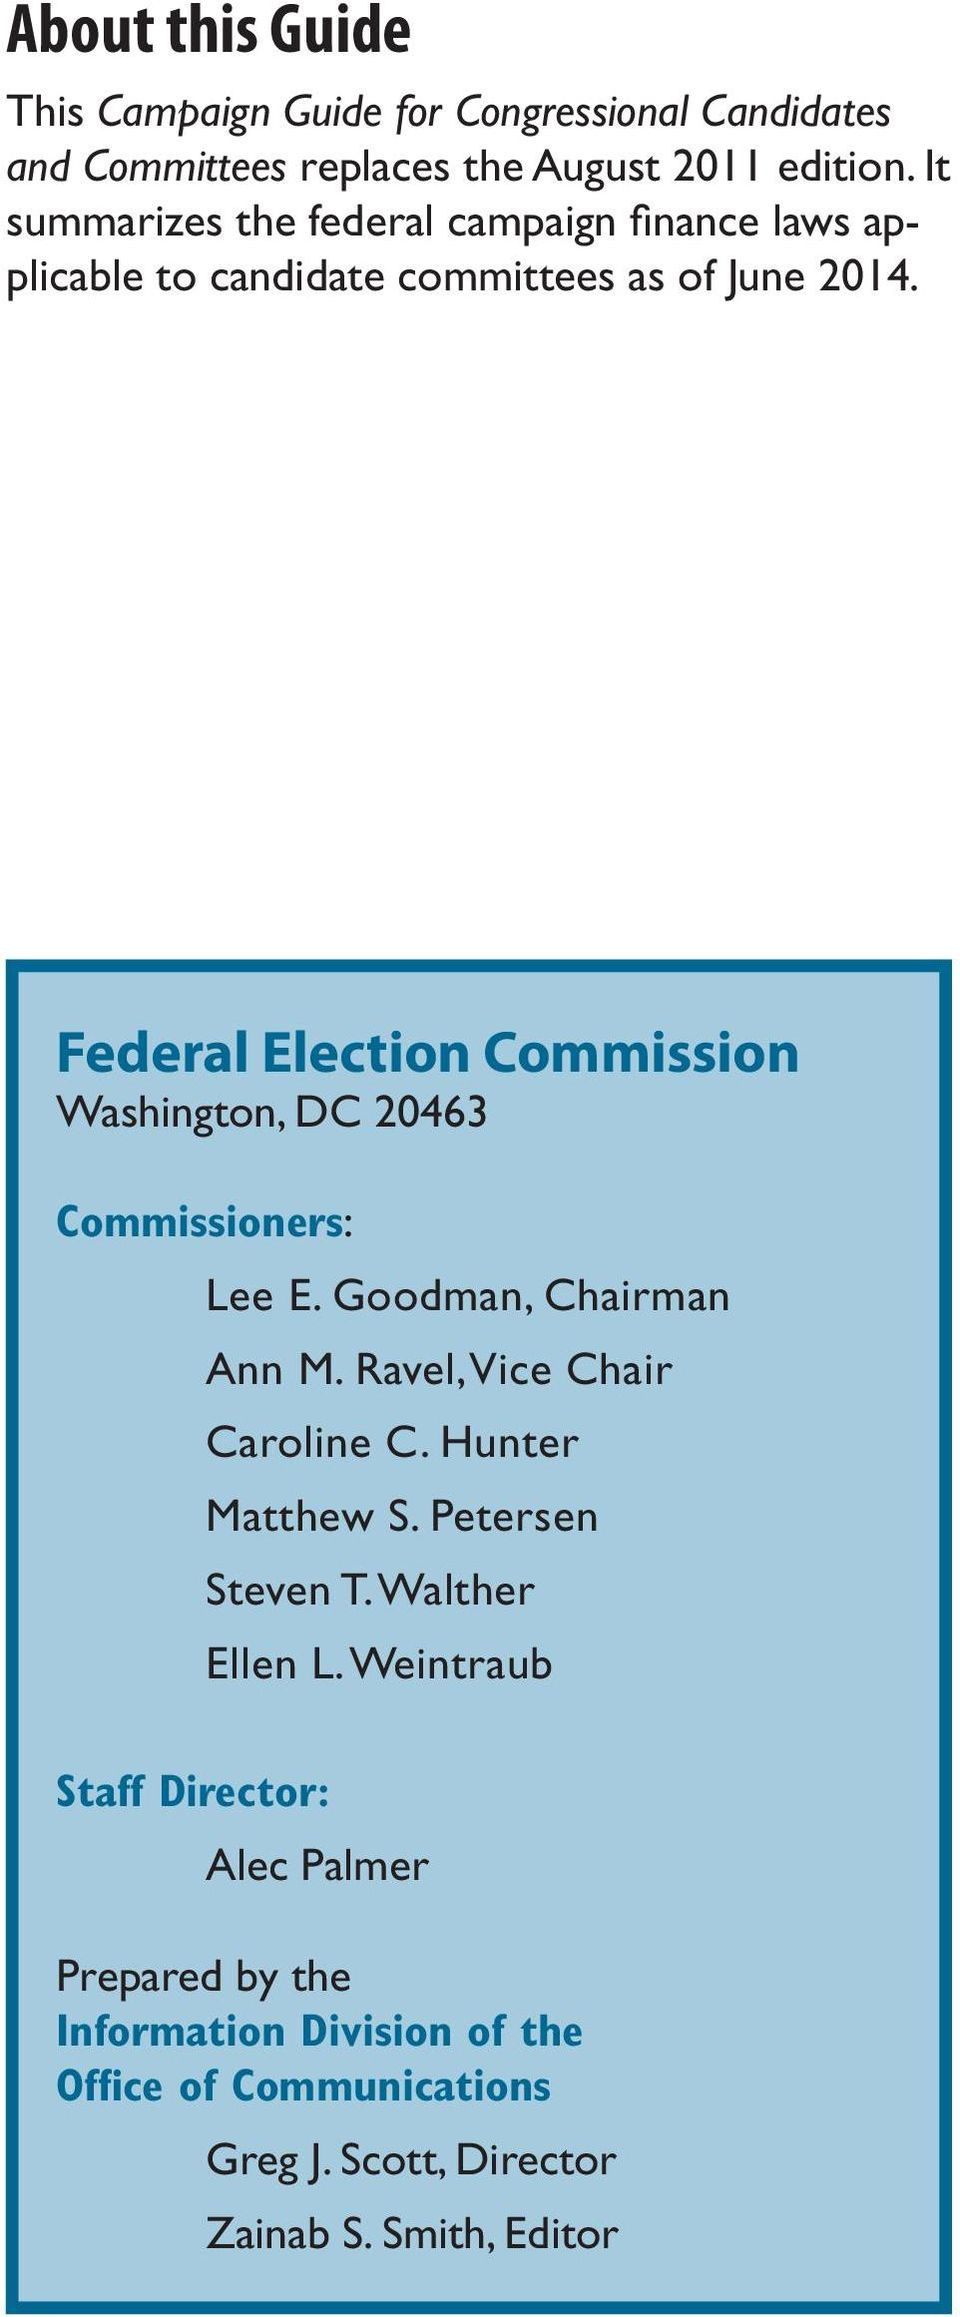 Federal Election Commission Washington, DC 20463 Commissioners: Lee E. Goodman, Chairman Ann M. Ravel, Vice Chair Caroline C.